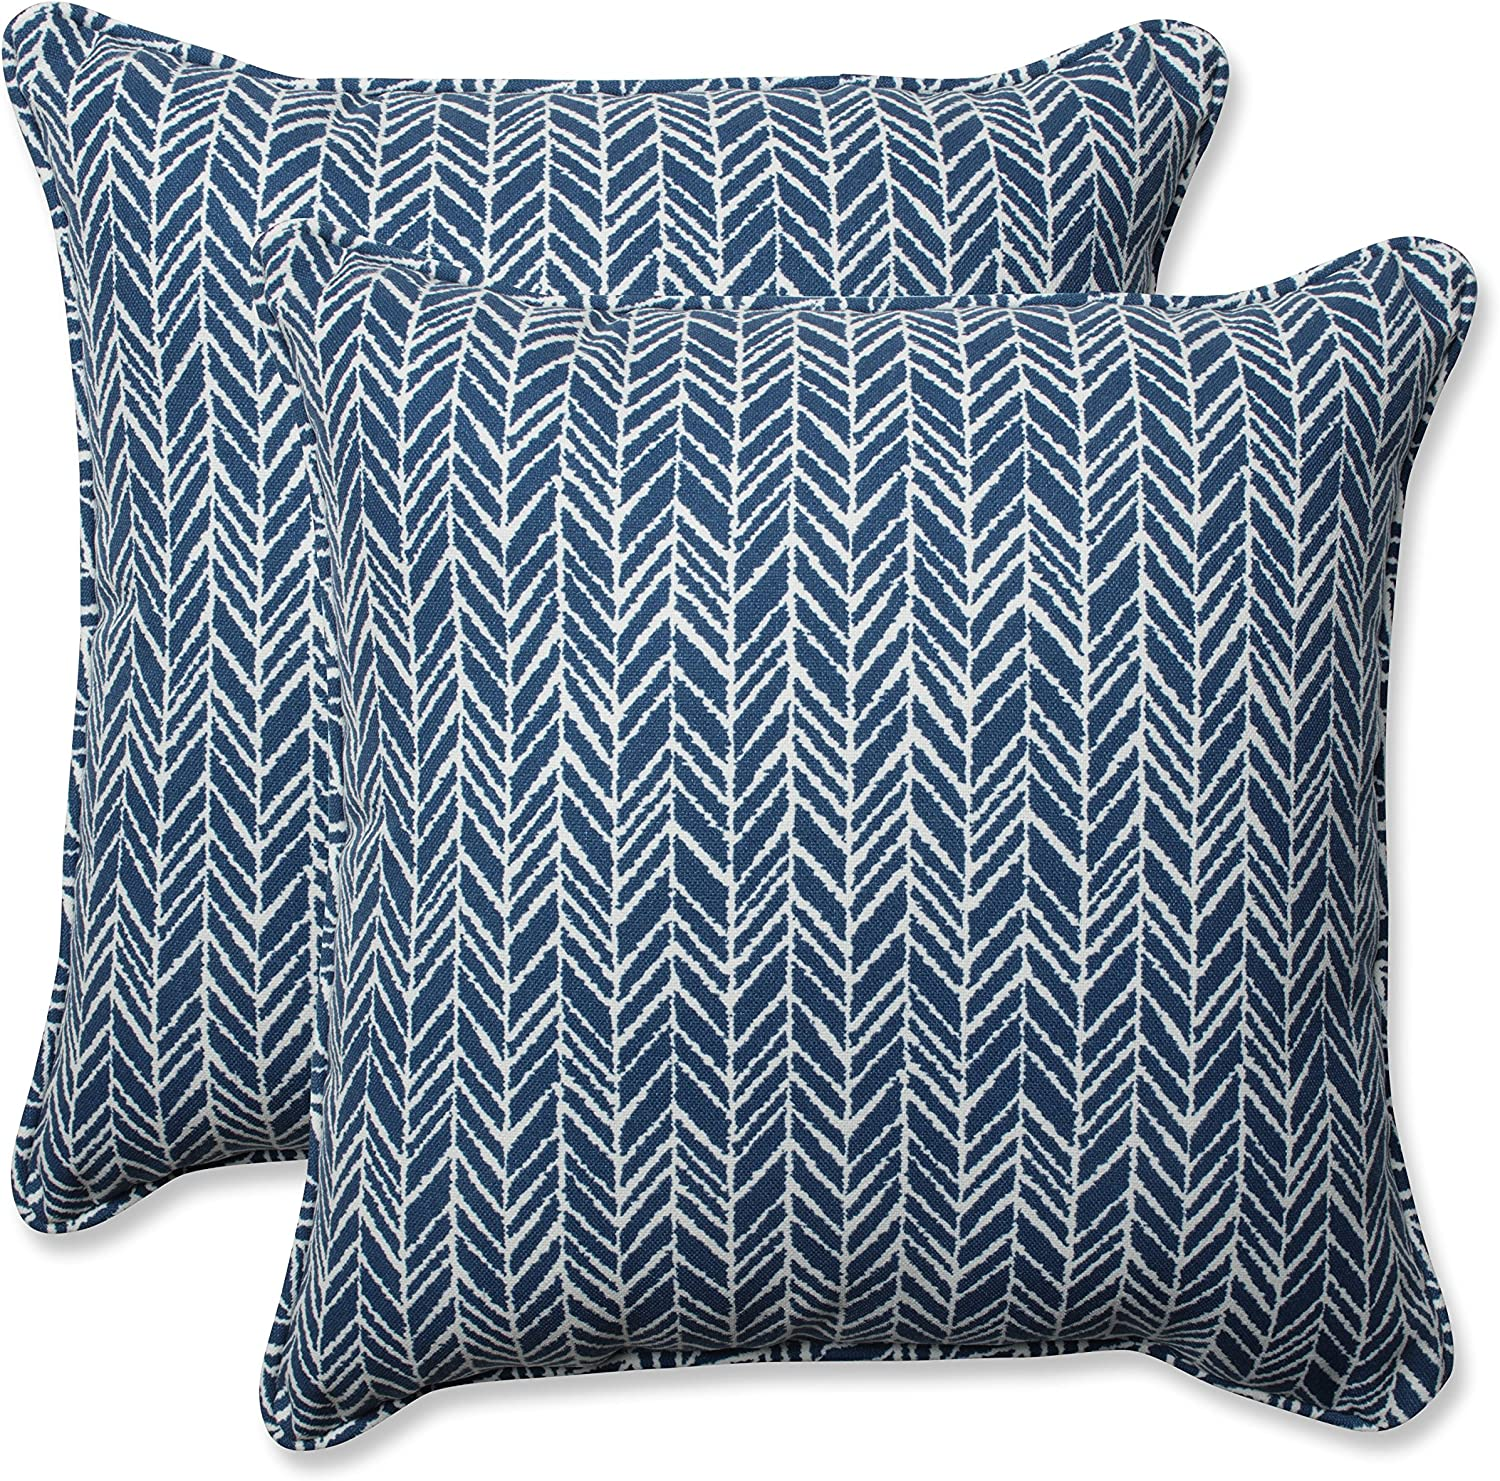 "Pillow Perfect Outdoor/Indoor Herringbone Ink Throw Pillows, 18.5"" x 18.5"", Blue, 2 Count"